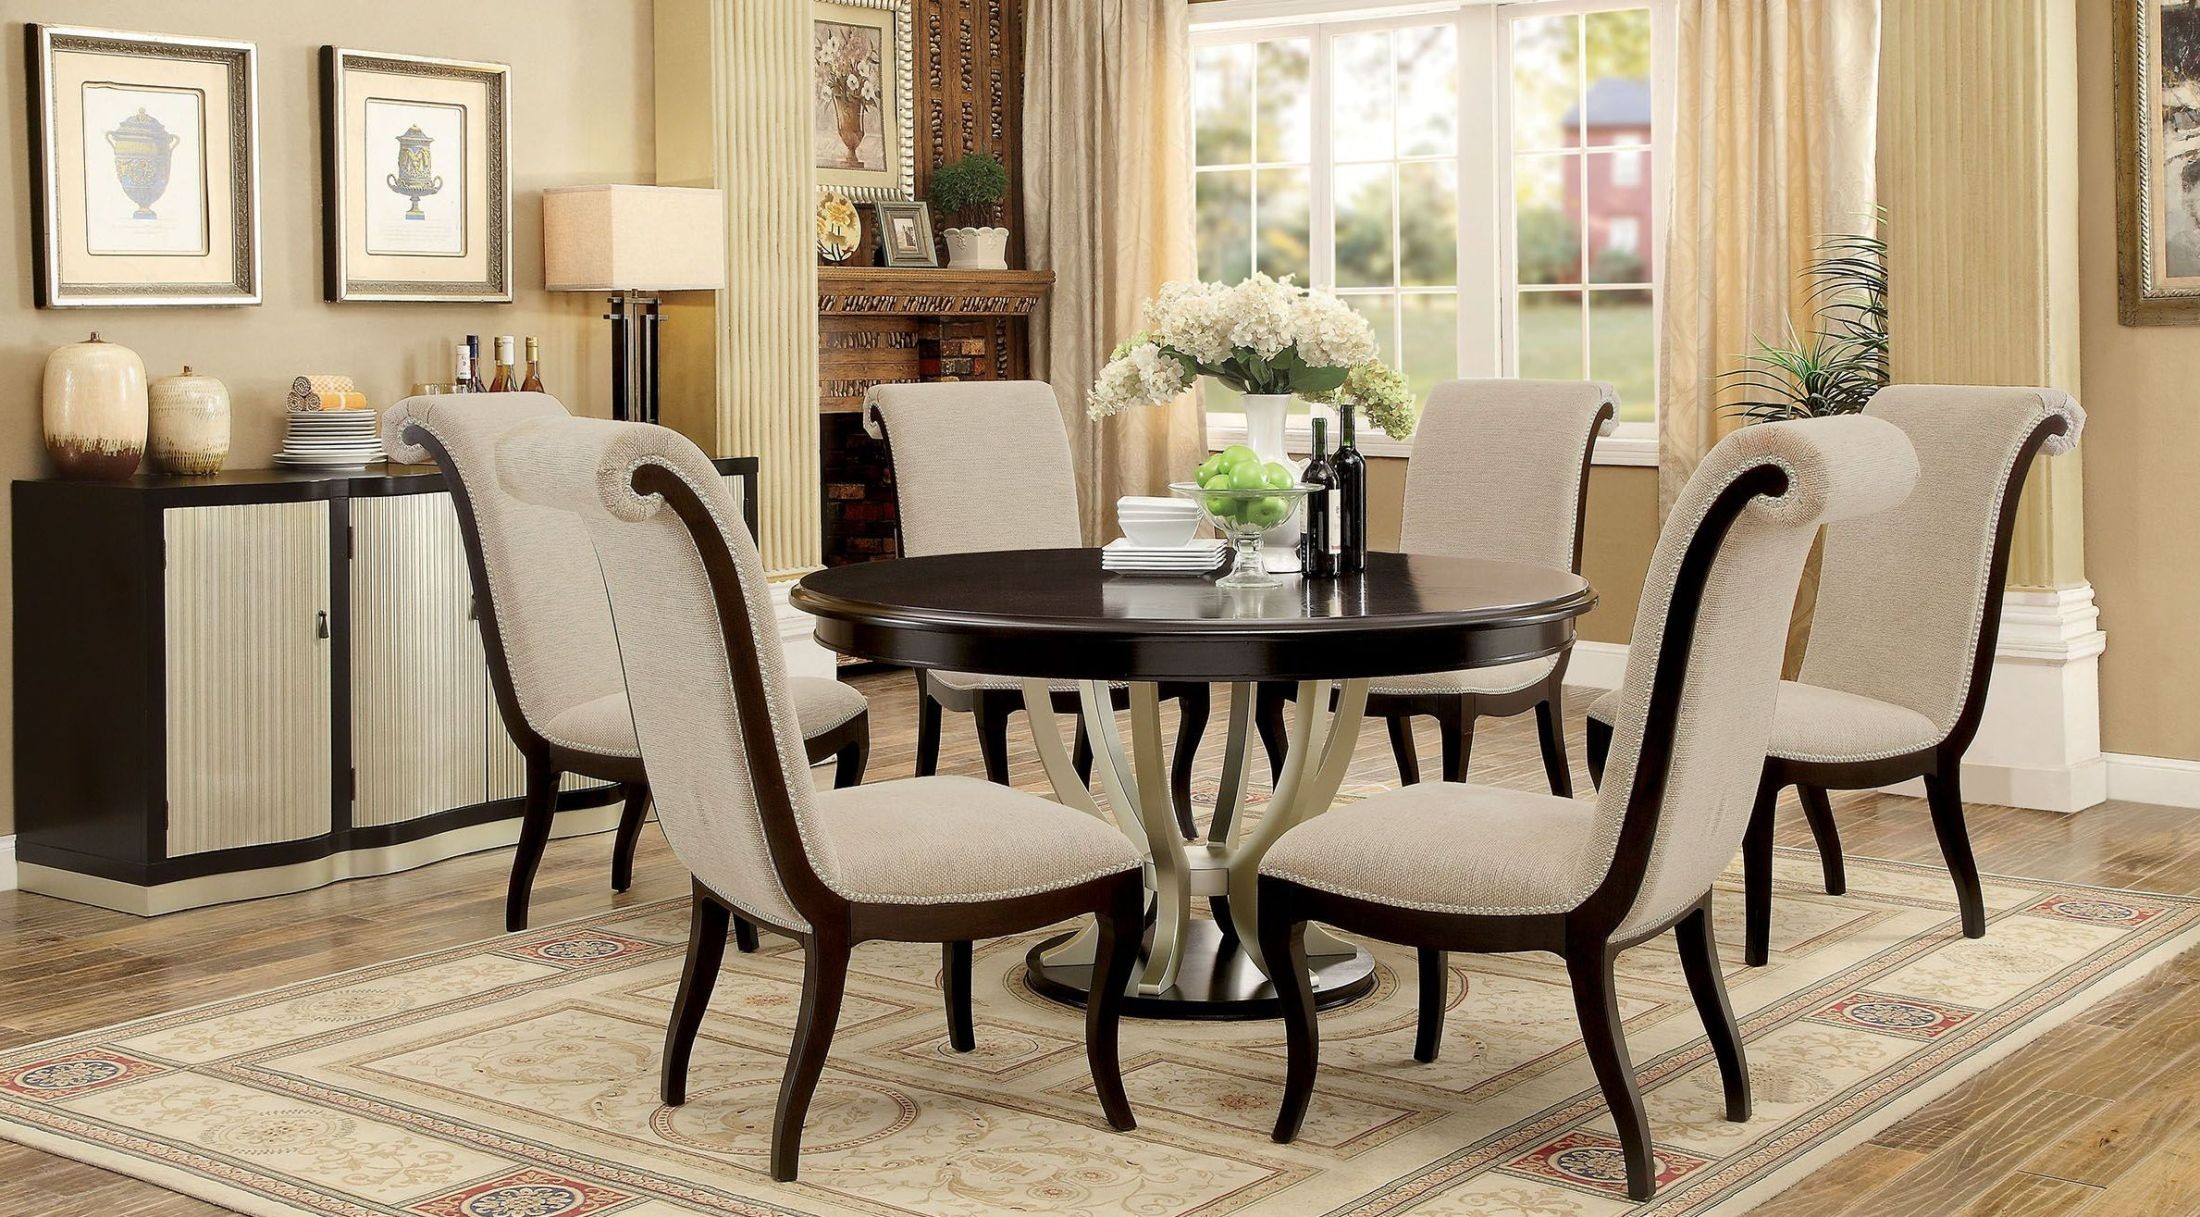 Ornette Espresso Round Dining Room Set CM3353RT Furniture of America